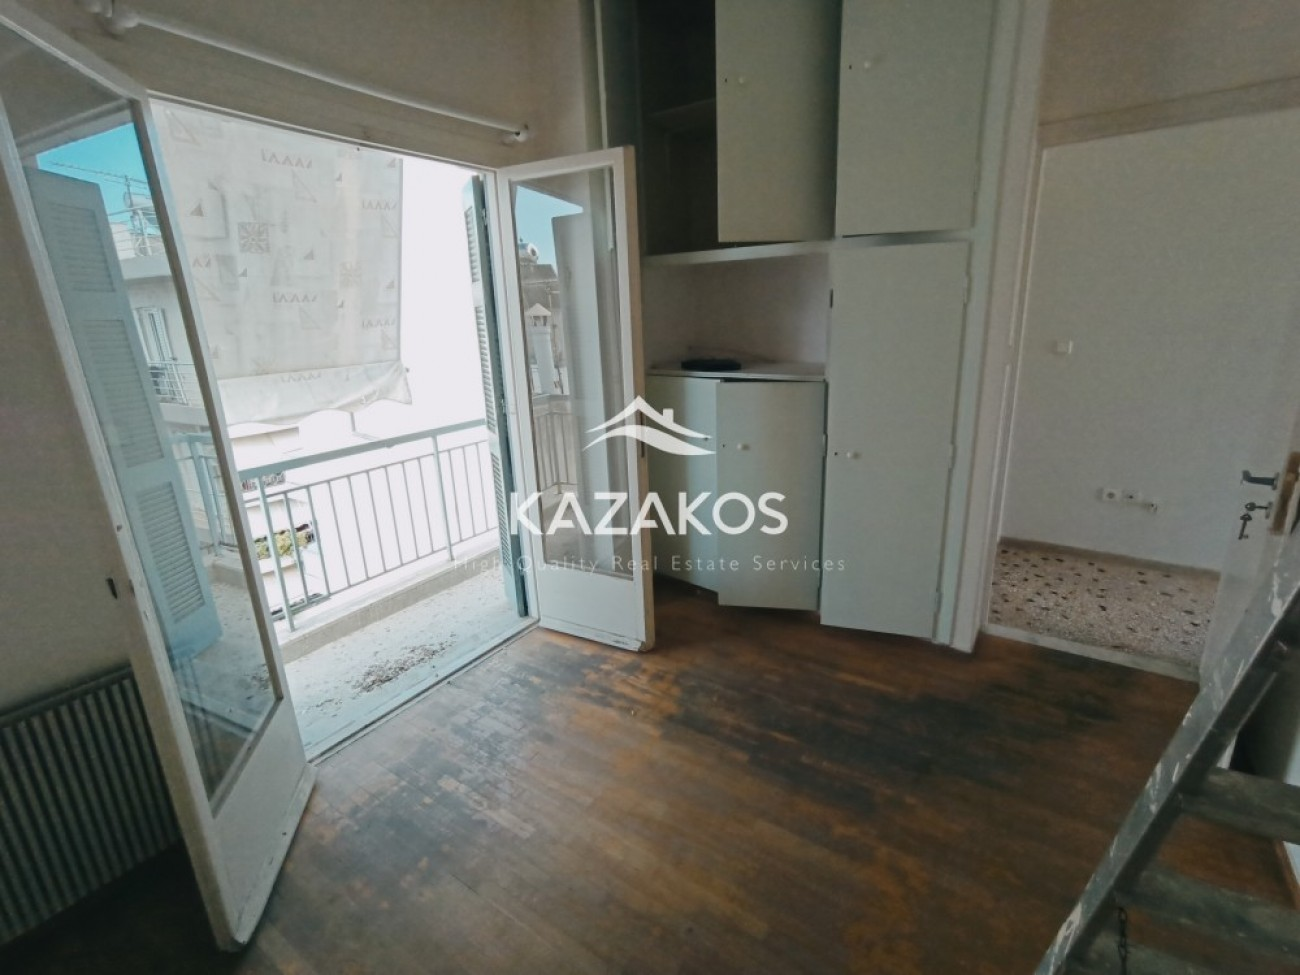 Apartment for Rent in Nirvana, Athens City Center, Greece